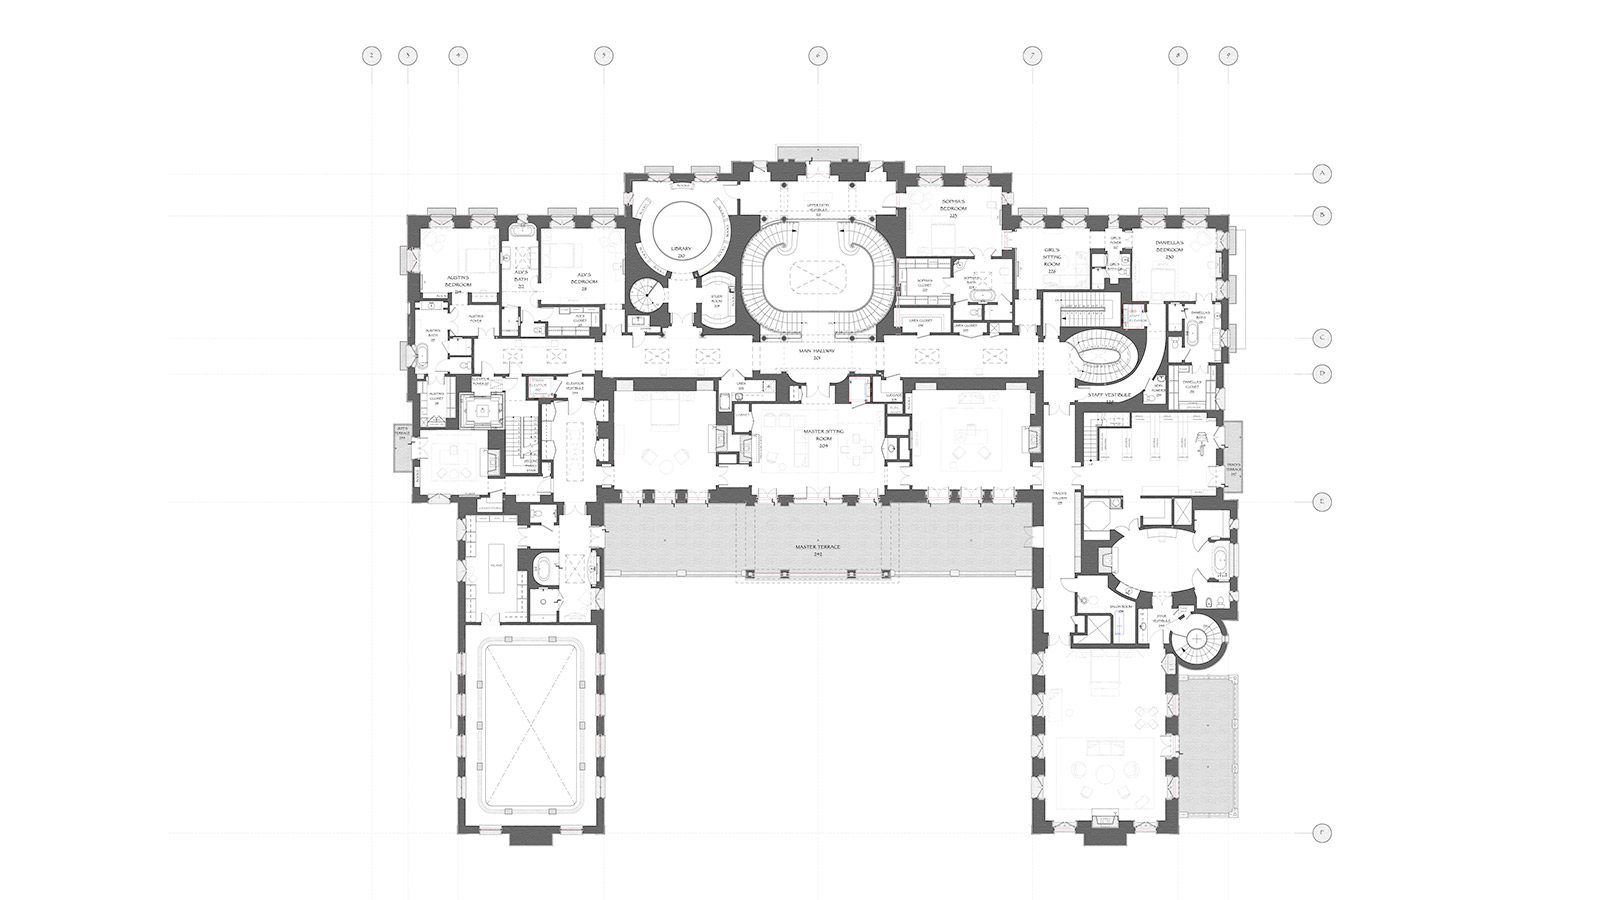 Chateau Des Fleurs Estate Planning How To Plan Floor Plans